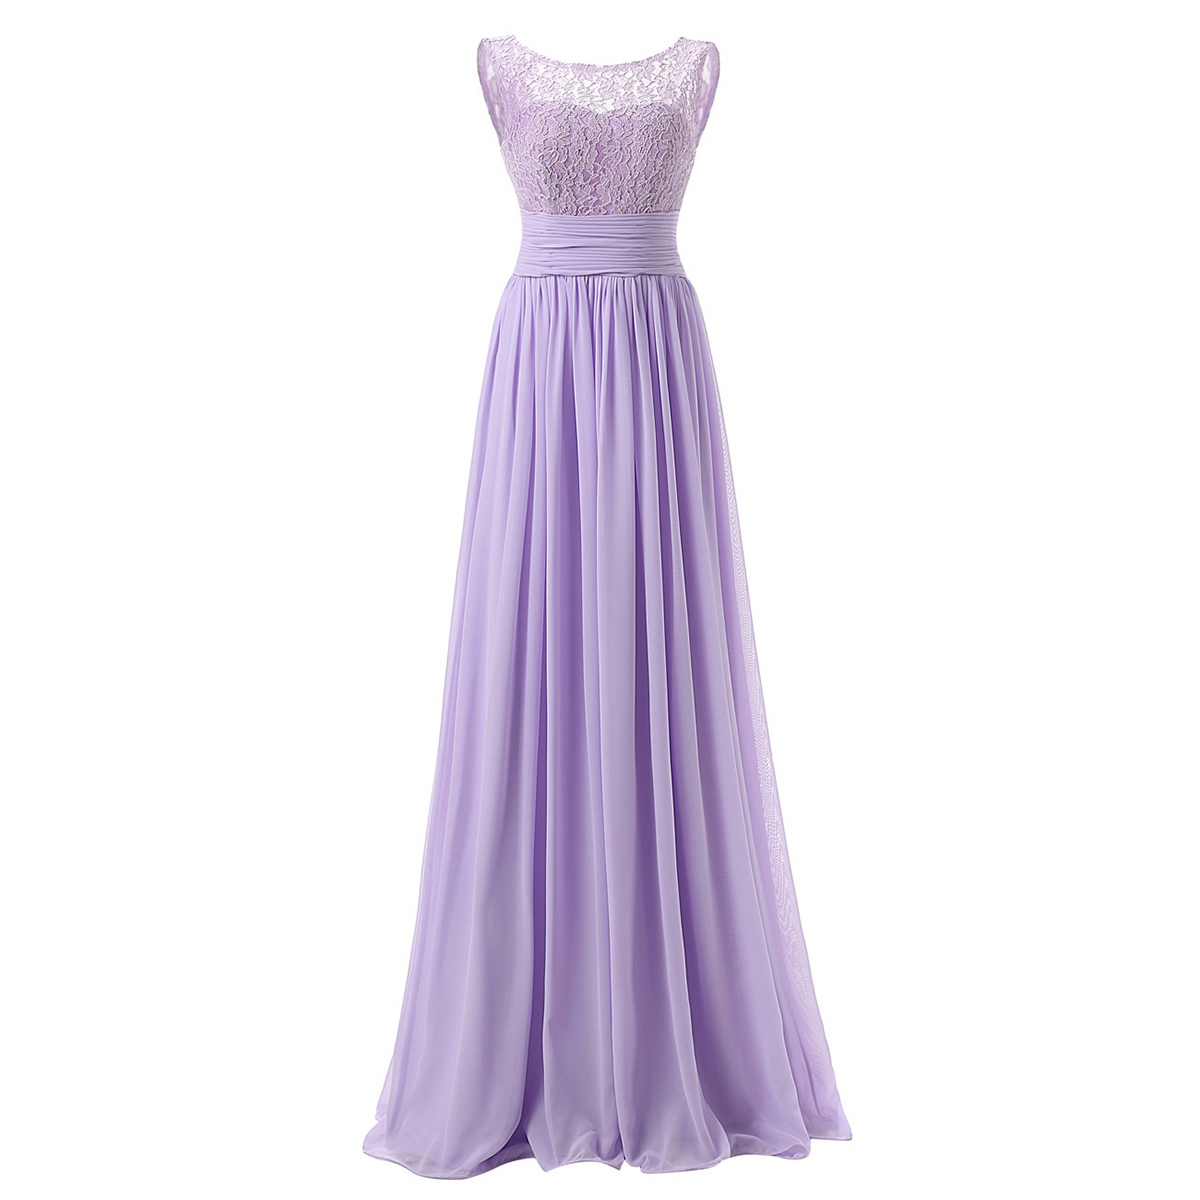 Lavender Floor Length Chiffon A-Line Ruffle Bridesmaid Dress Featuring Lace Sleeveless Bateau Neckline and Ruched Belt